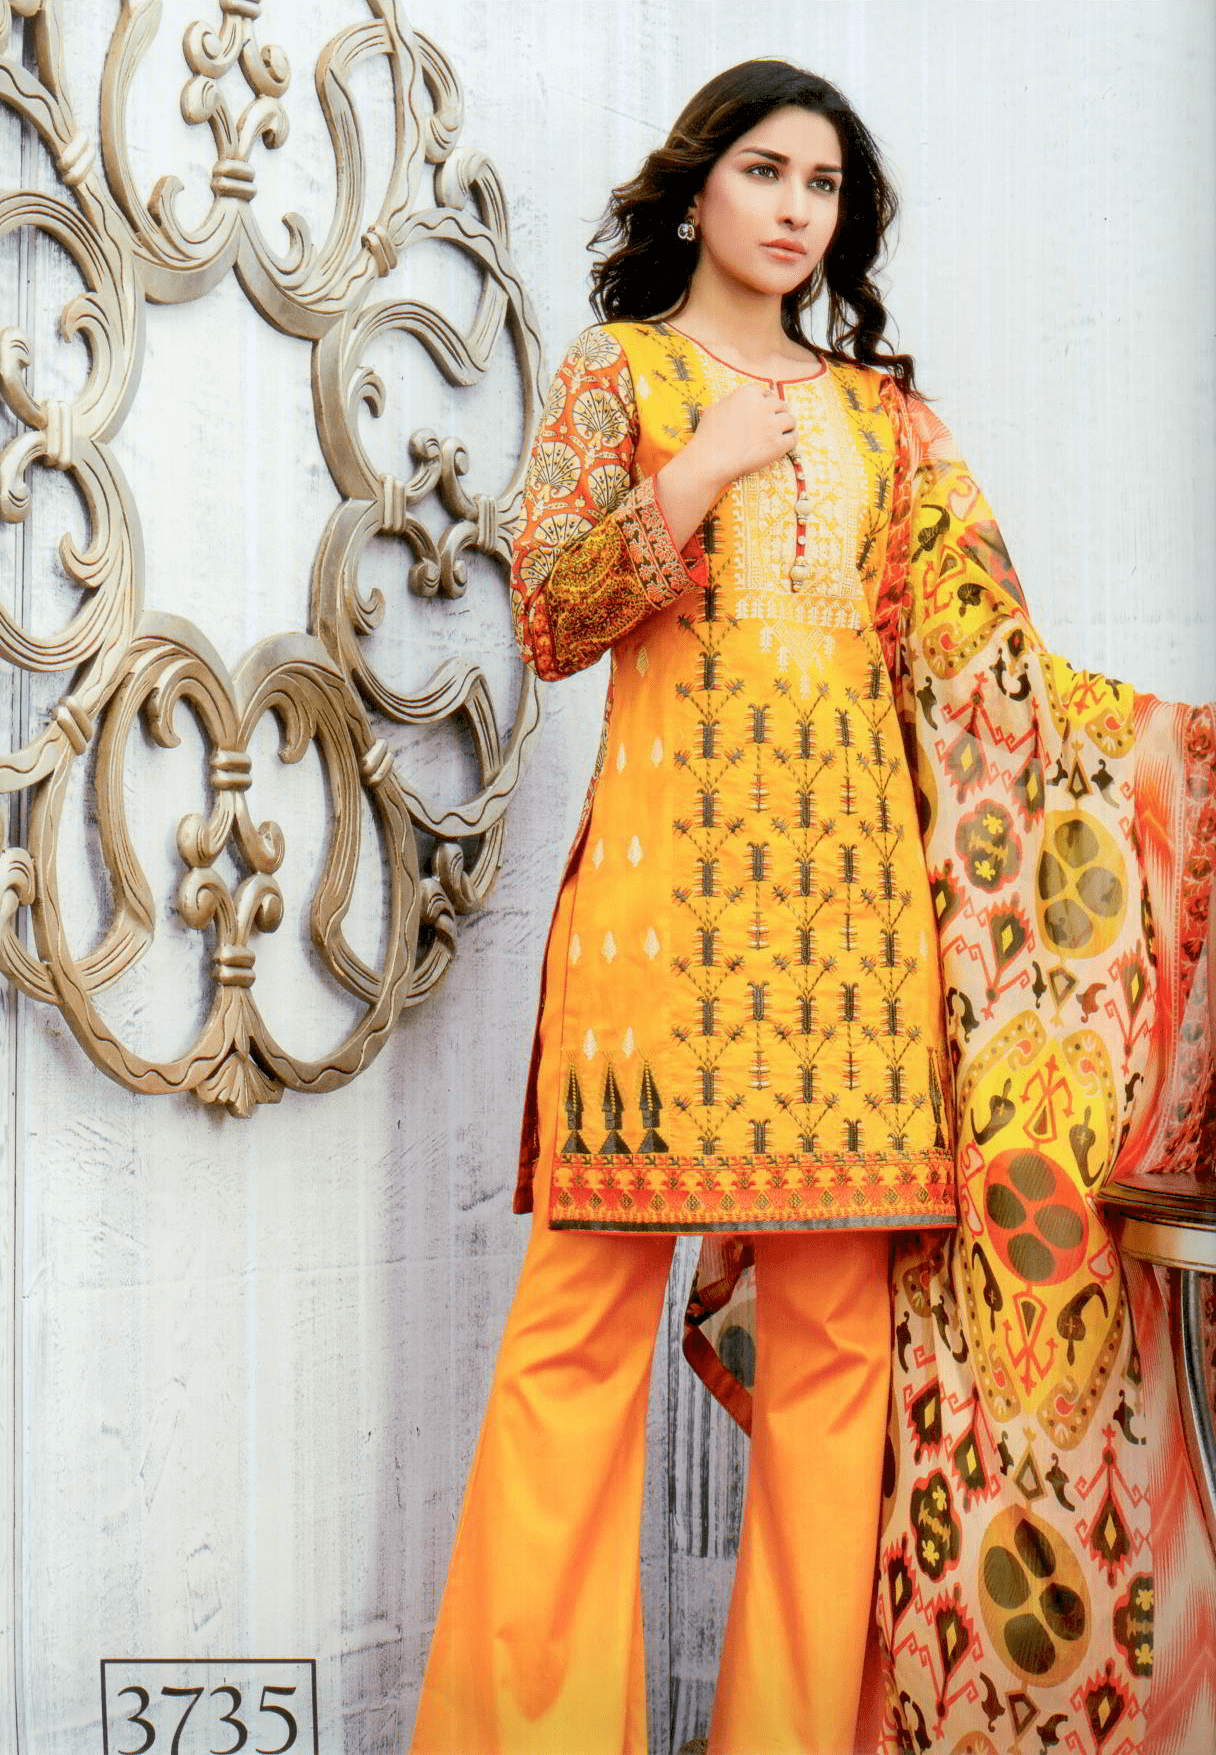 Aliza wardrobe summer 17-Vol 1- Three piece chiffon suit-3735